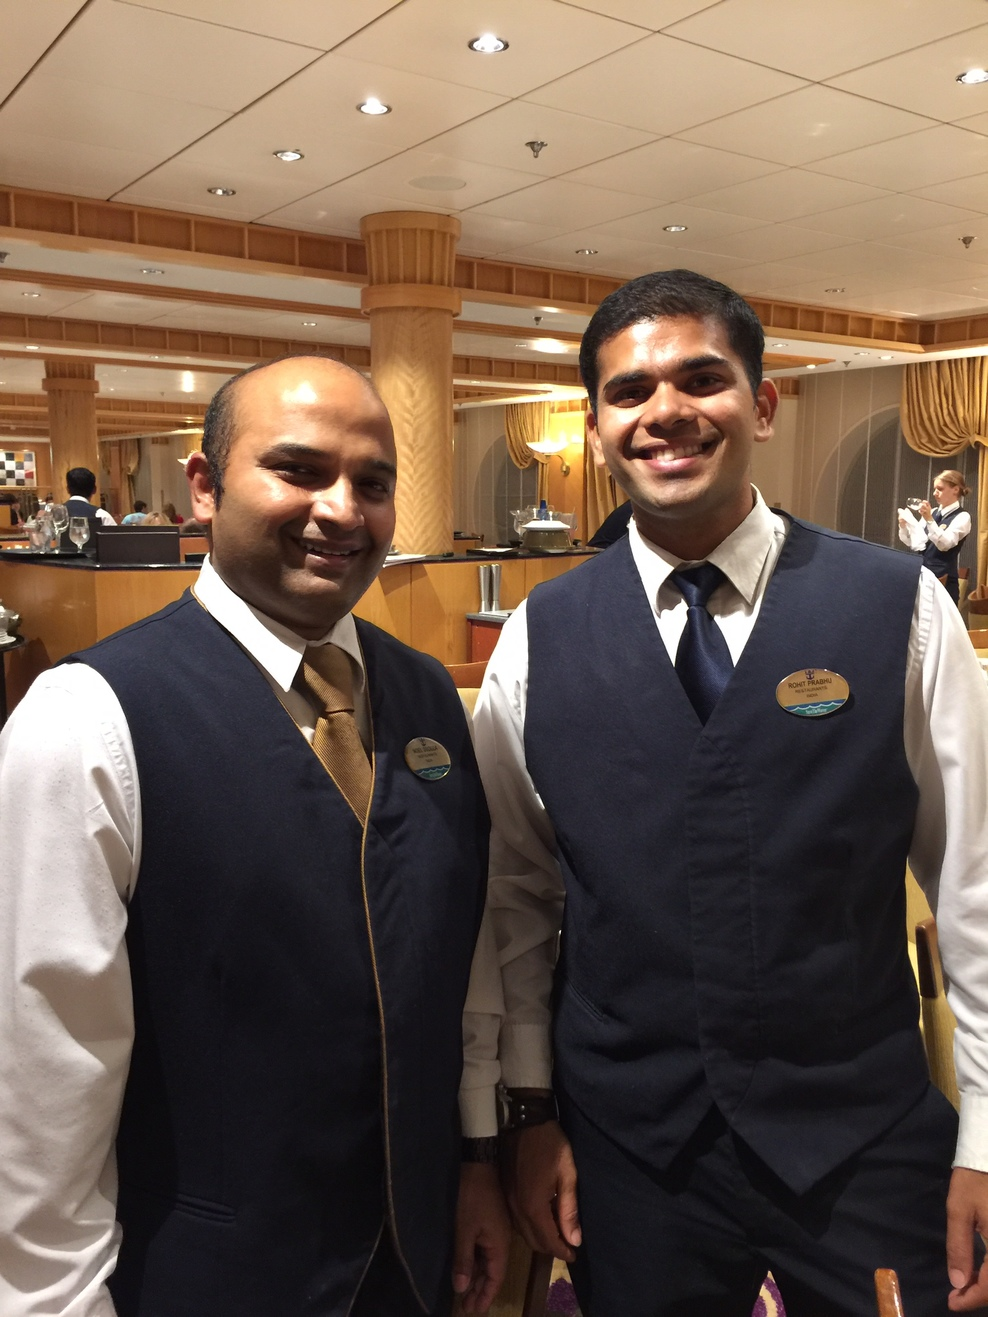 Our excellent wait staff.